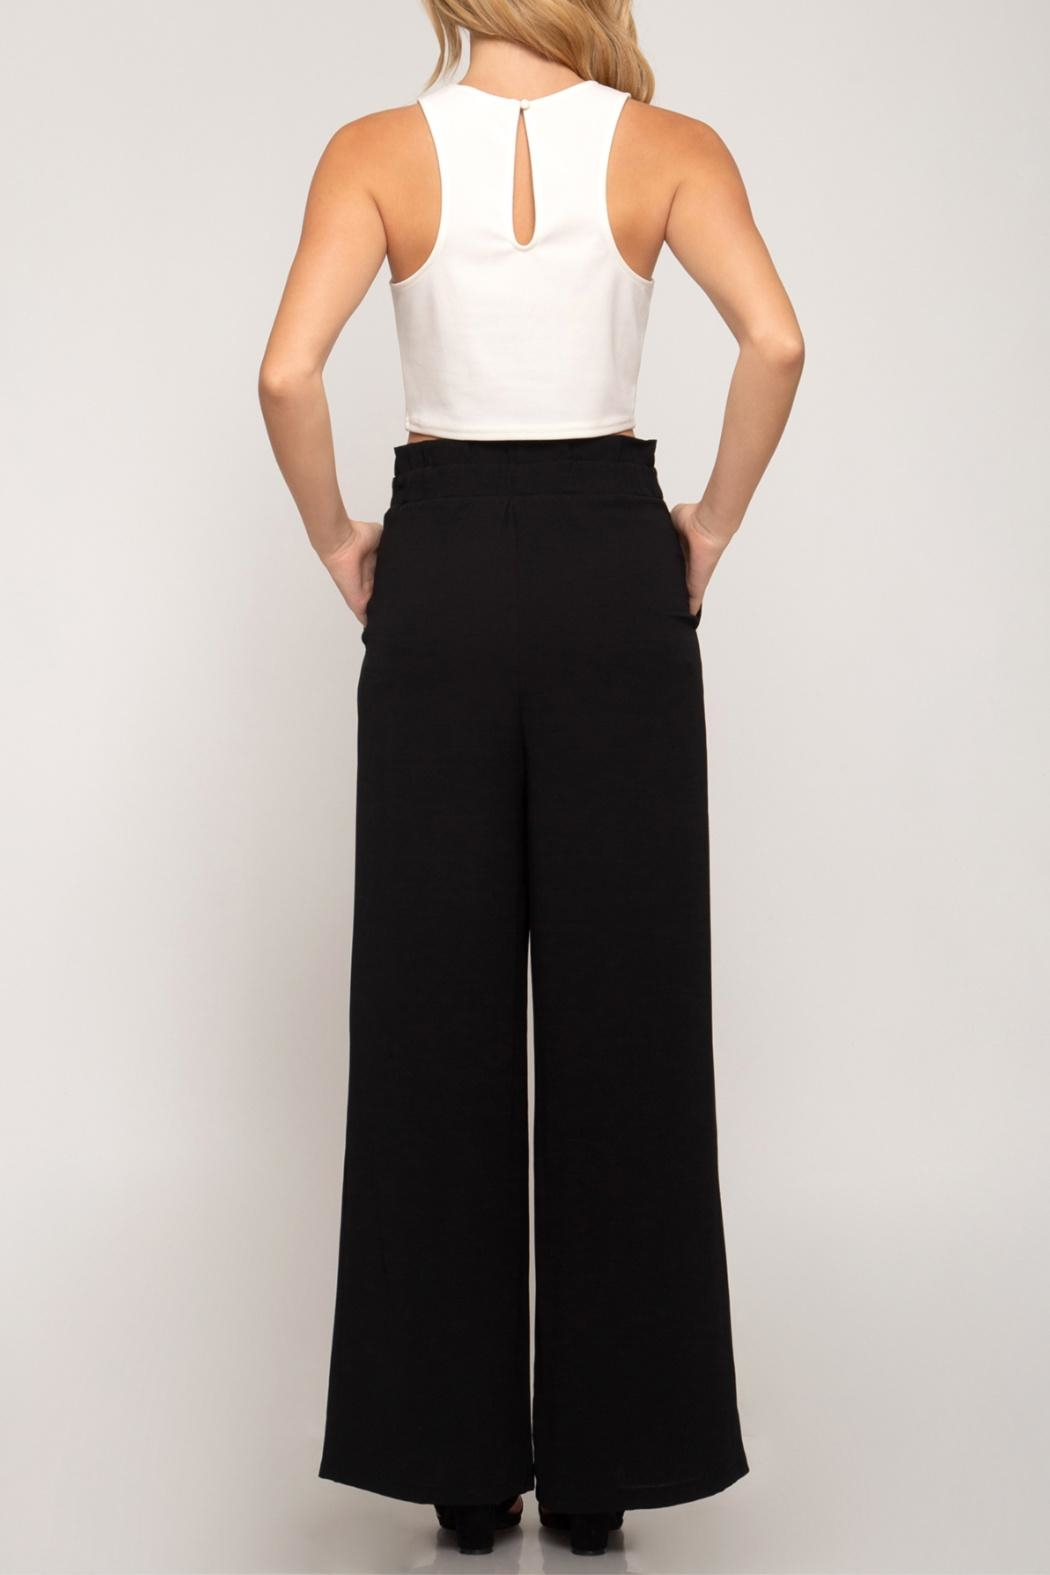 She + Sky Palazzo Paperbag Pants - Side Cropped Image